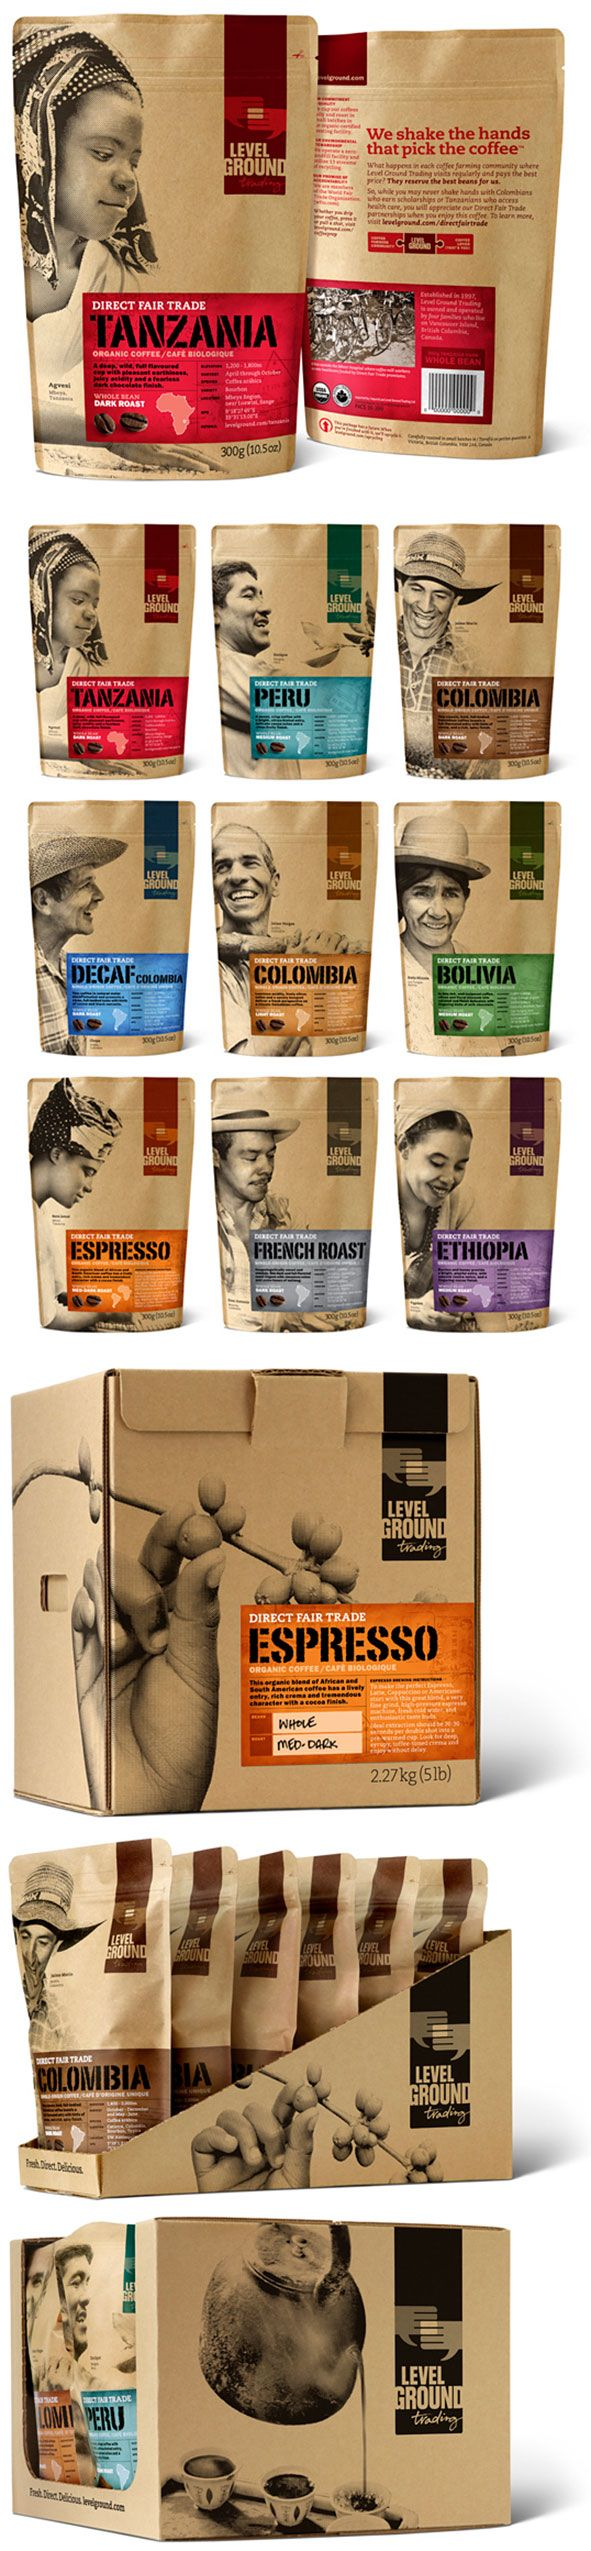 "Level Ground Trading Designed by Subplot Design | Country: Canada | Fonts: Portago (customized), Franklin Gothic, Caecilia  ""Founded in 1997, Level Ground Trading of Victoria, BC is dedicated to trading fairly and directly with small-scale producers in developing countries, and to market their products in North America, offering their customers ethical choices."